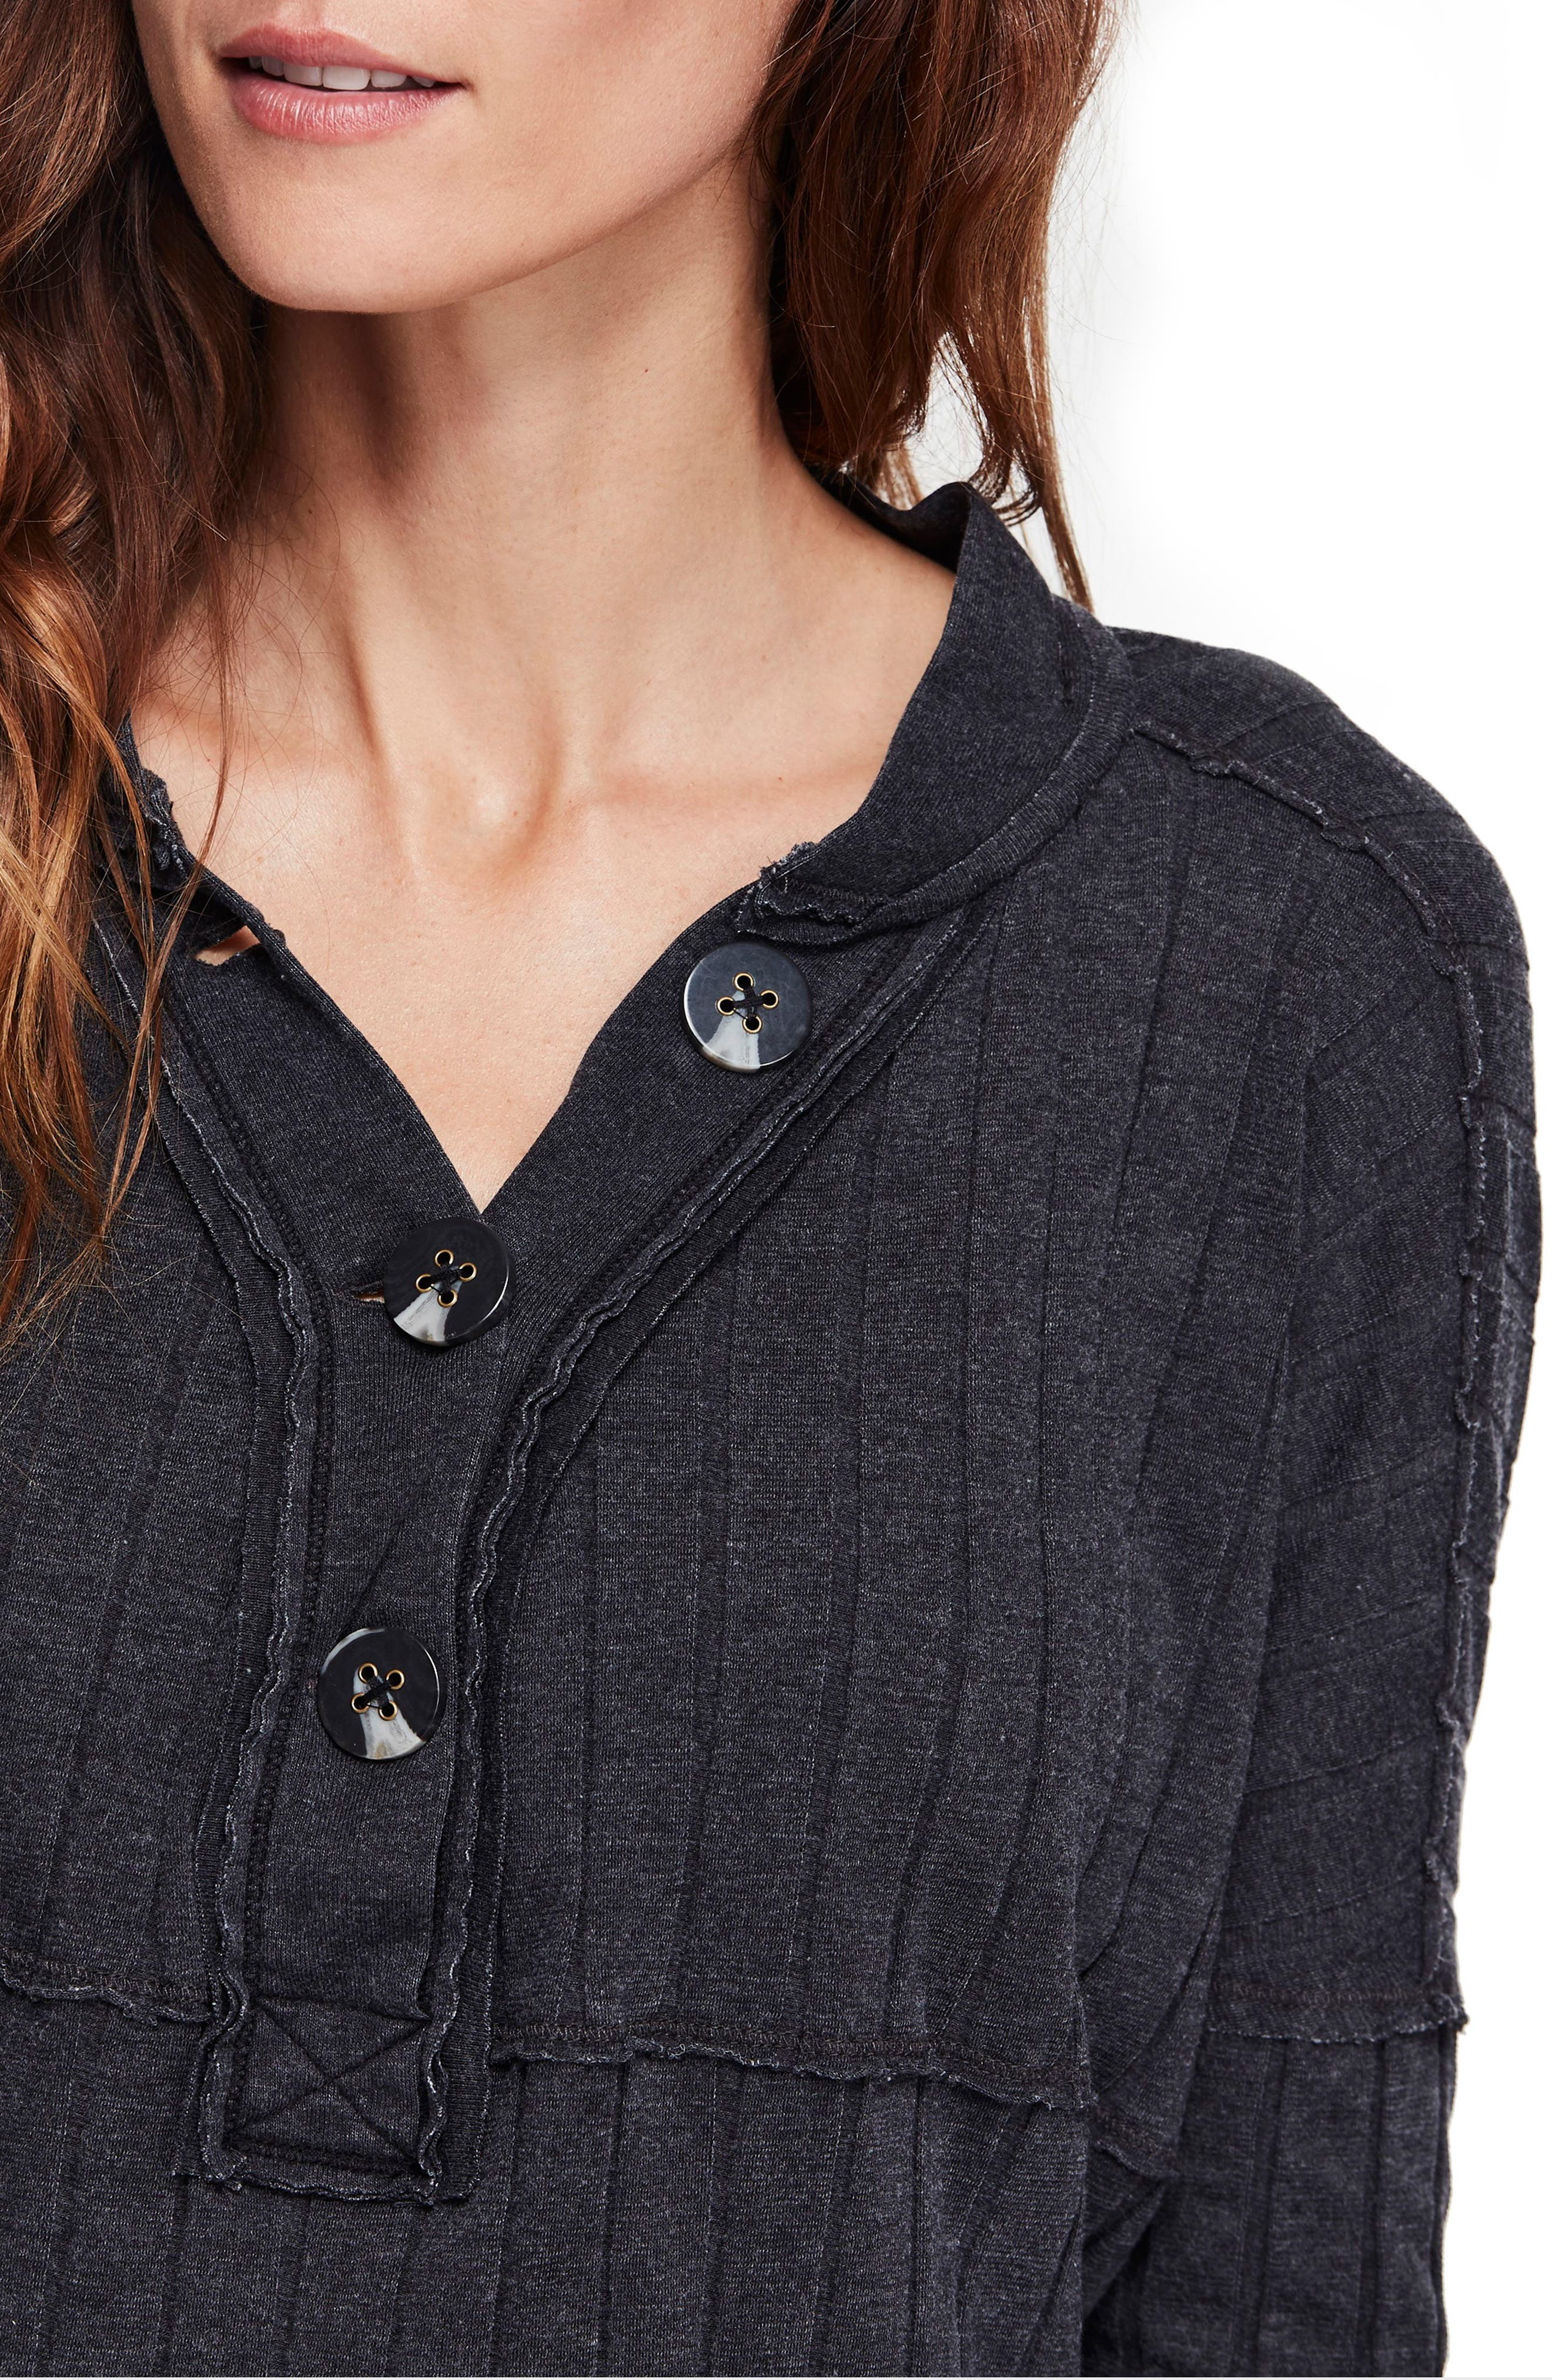 In The Mix Knit Top,                             Alternate thumbnail 4, color,                             BLACK